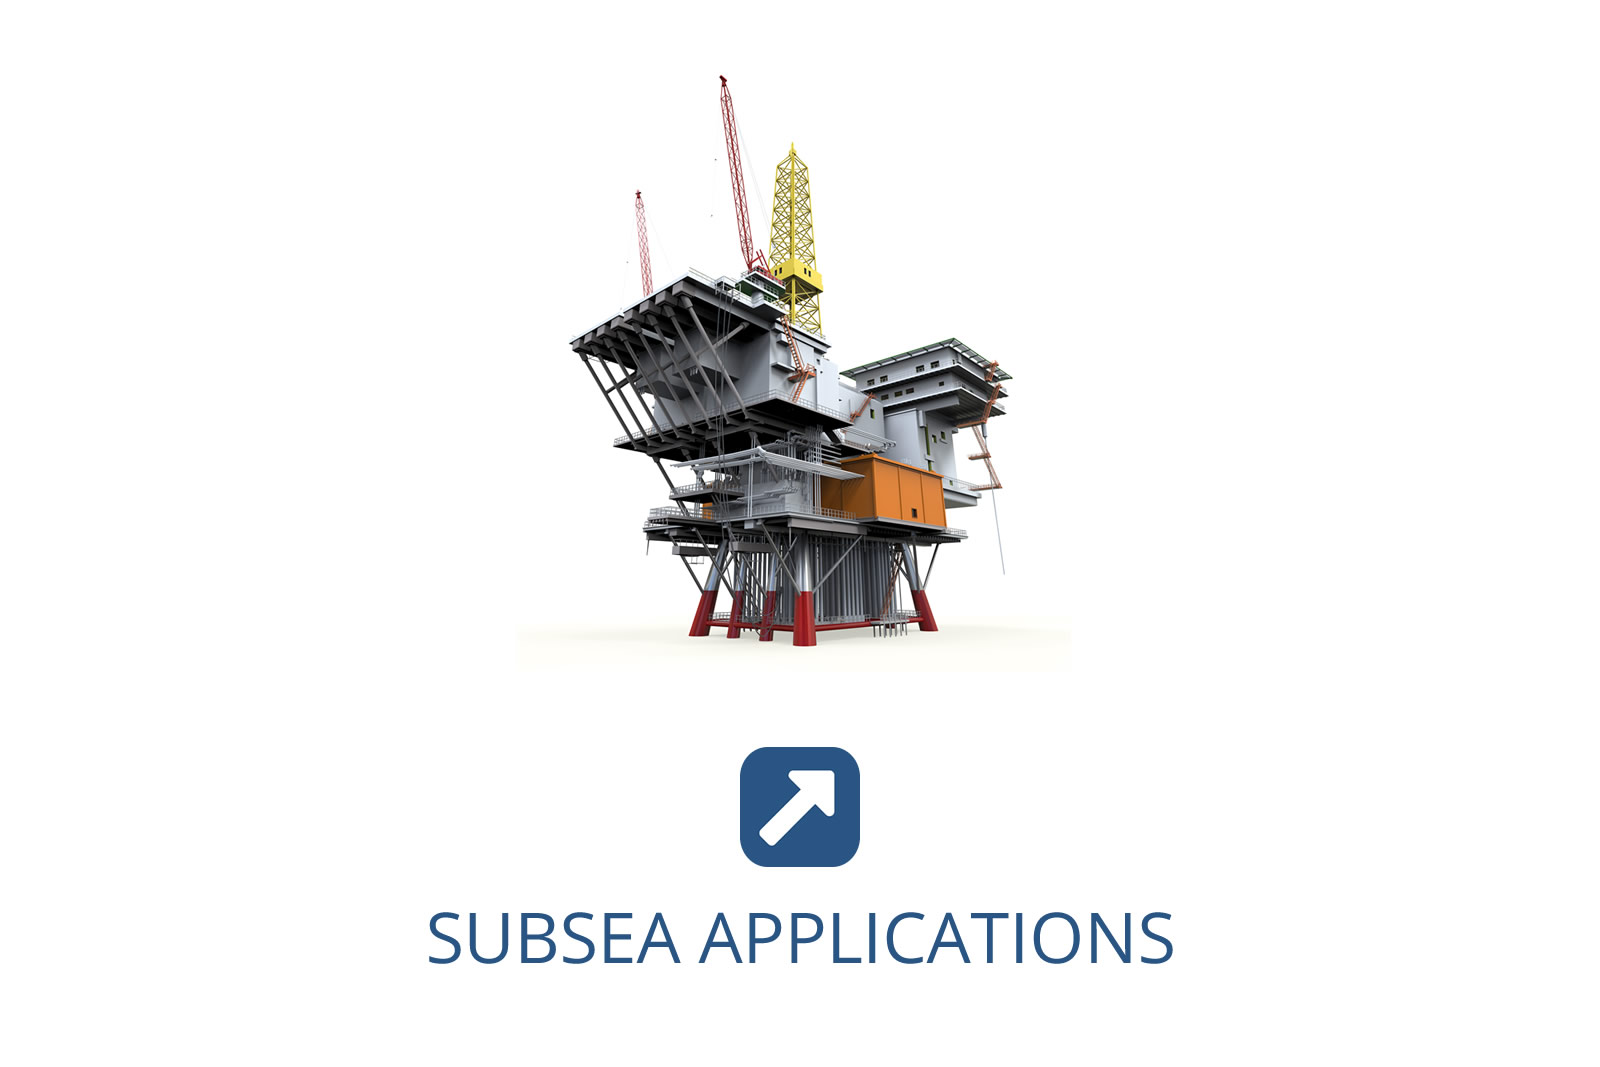 Copper for Subsea Applications